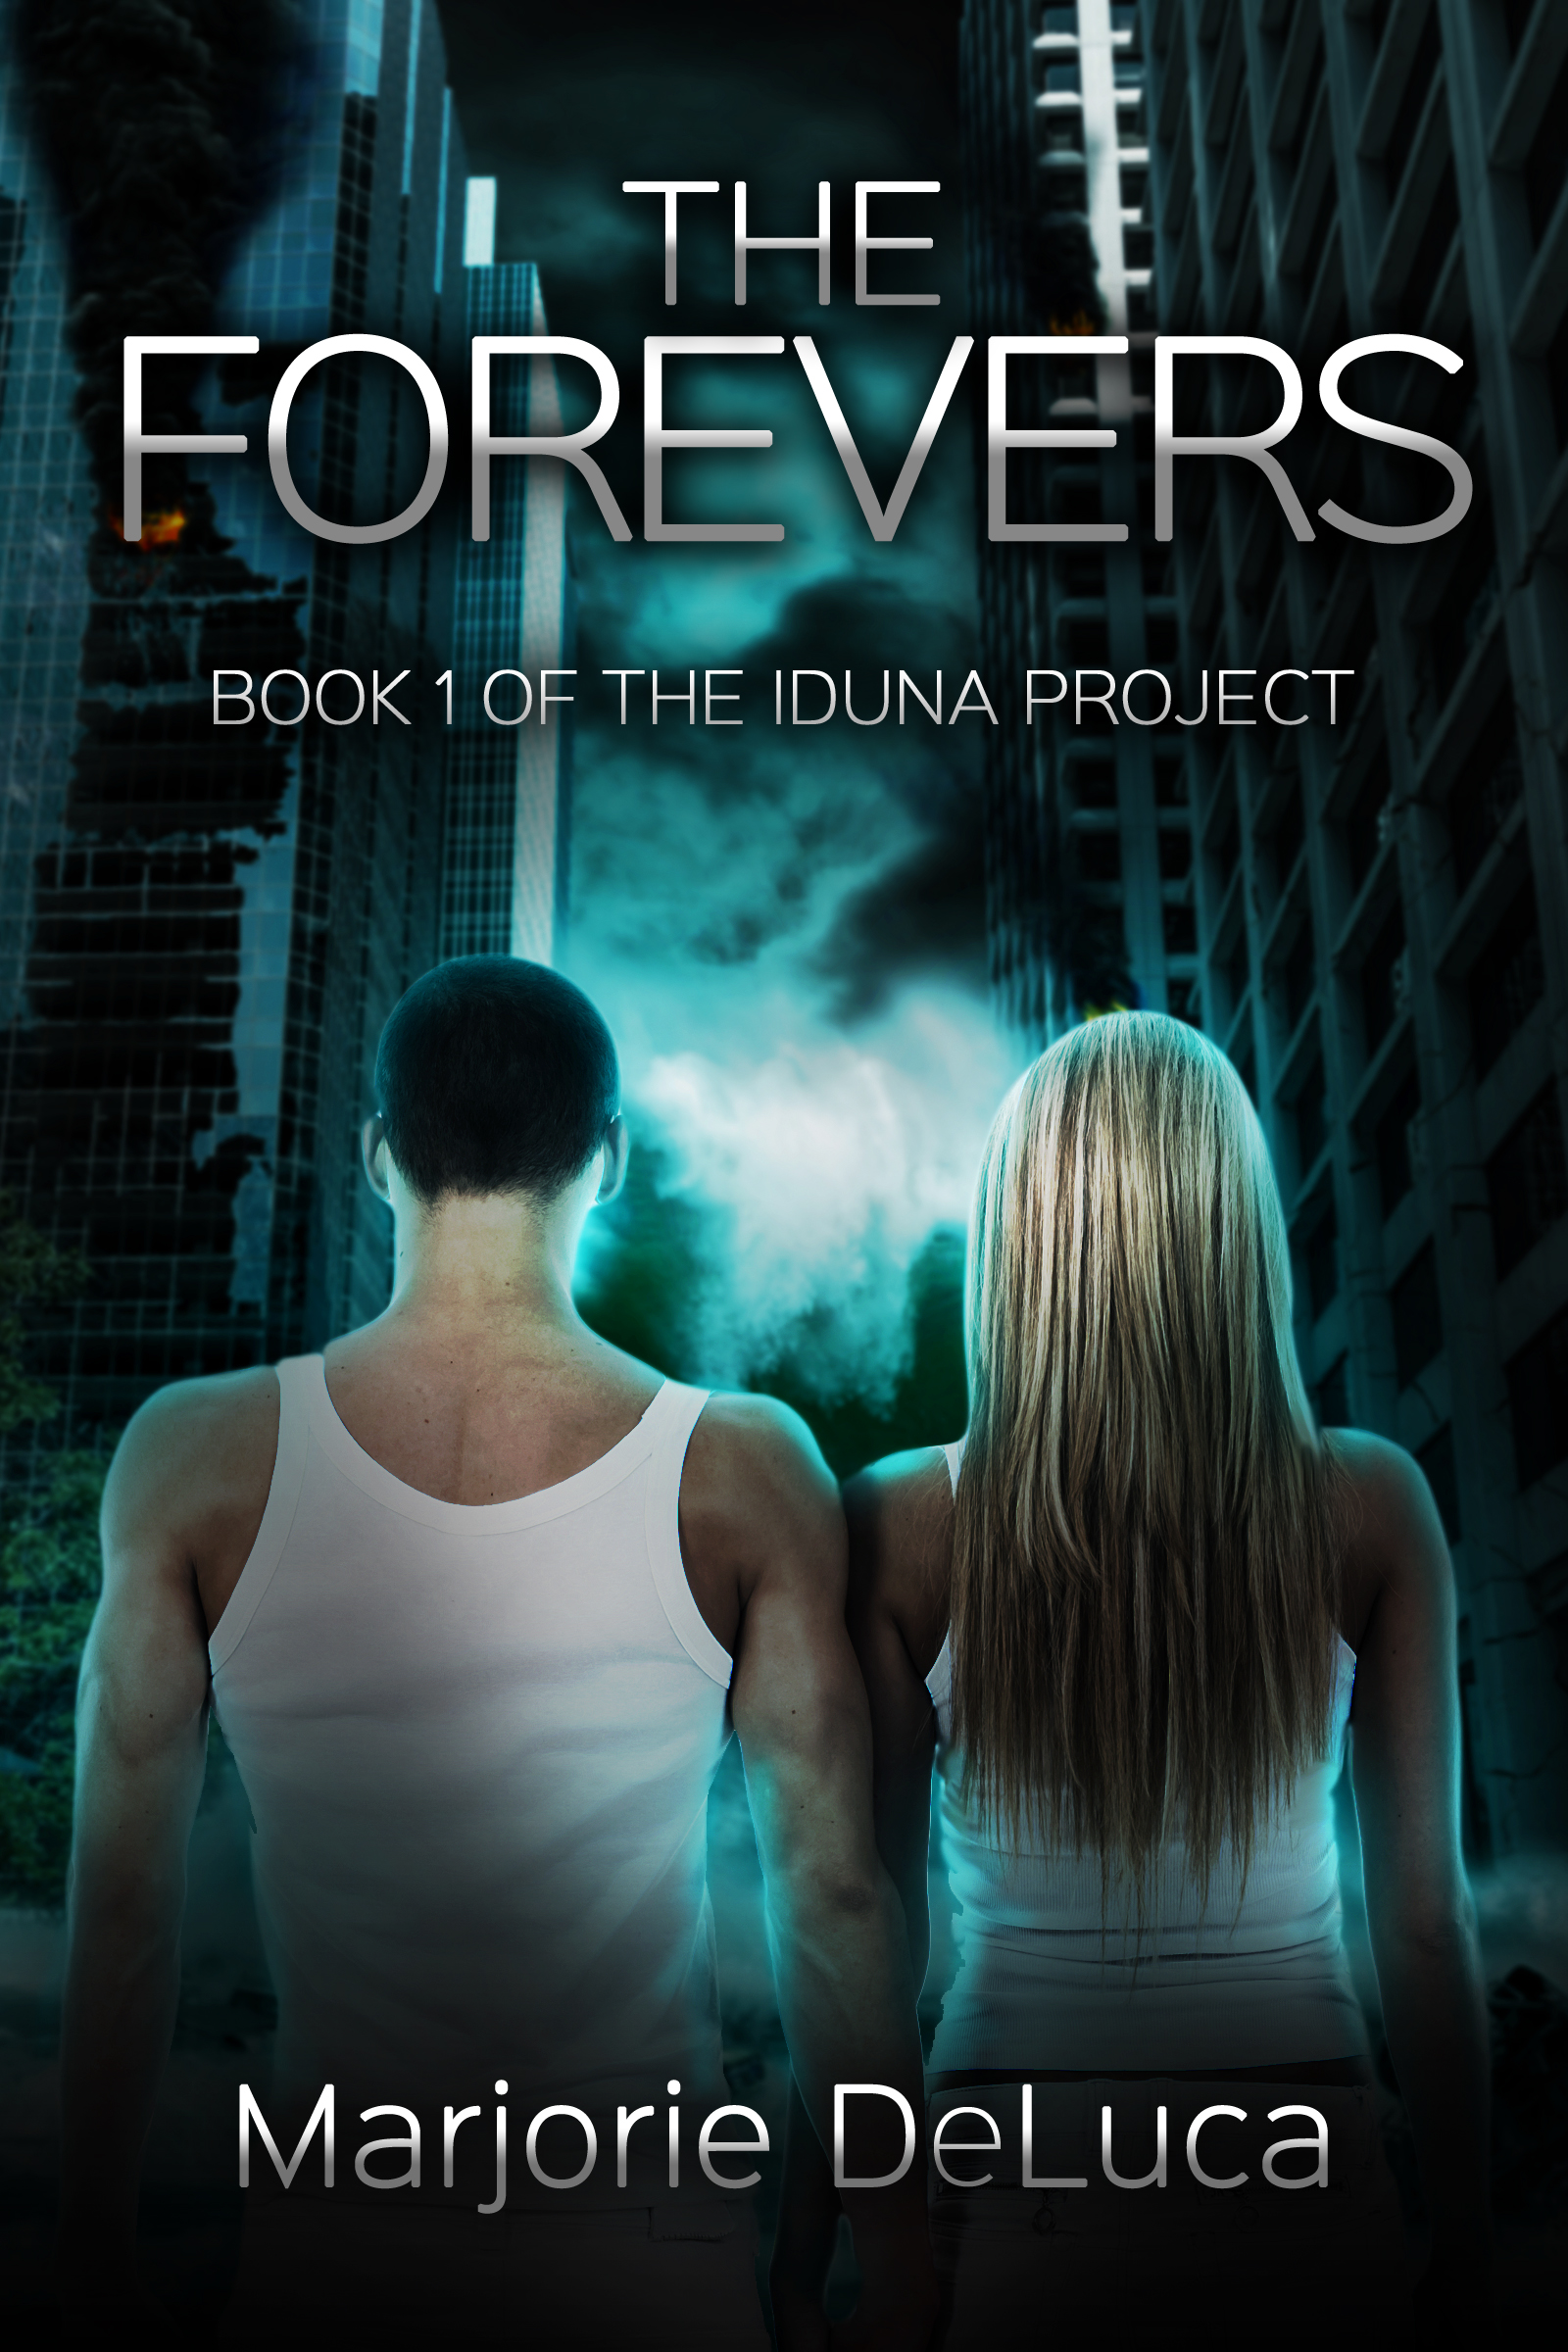 The-Forevers-book-1-cover